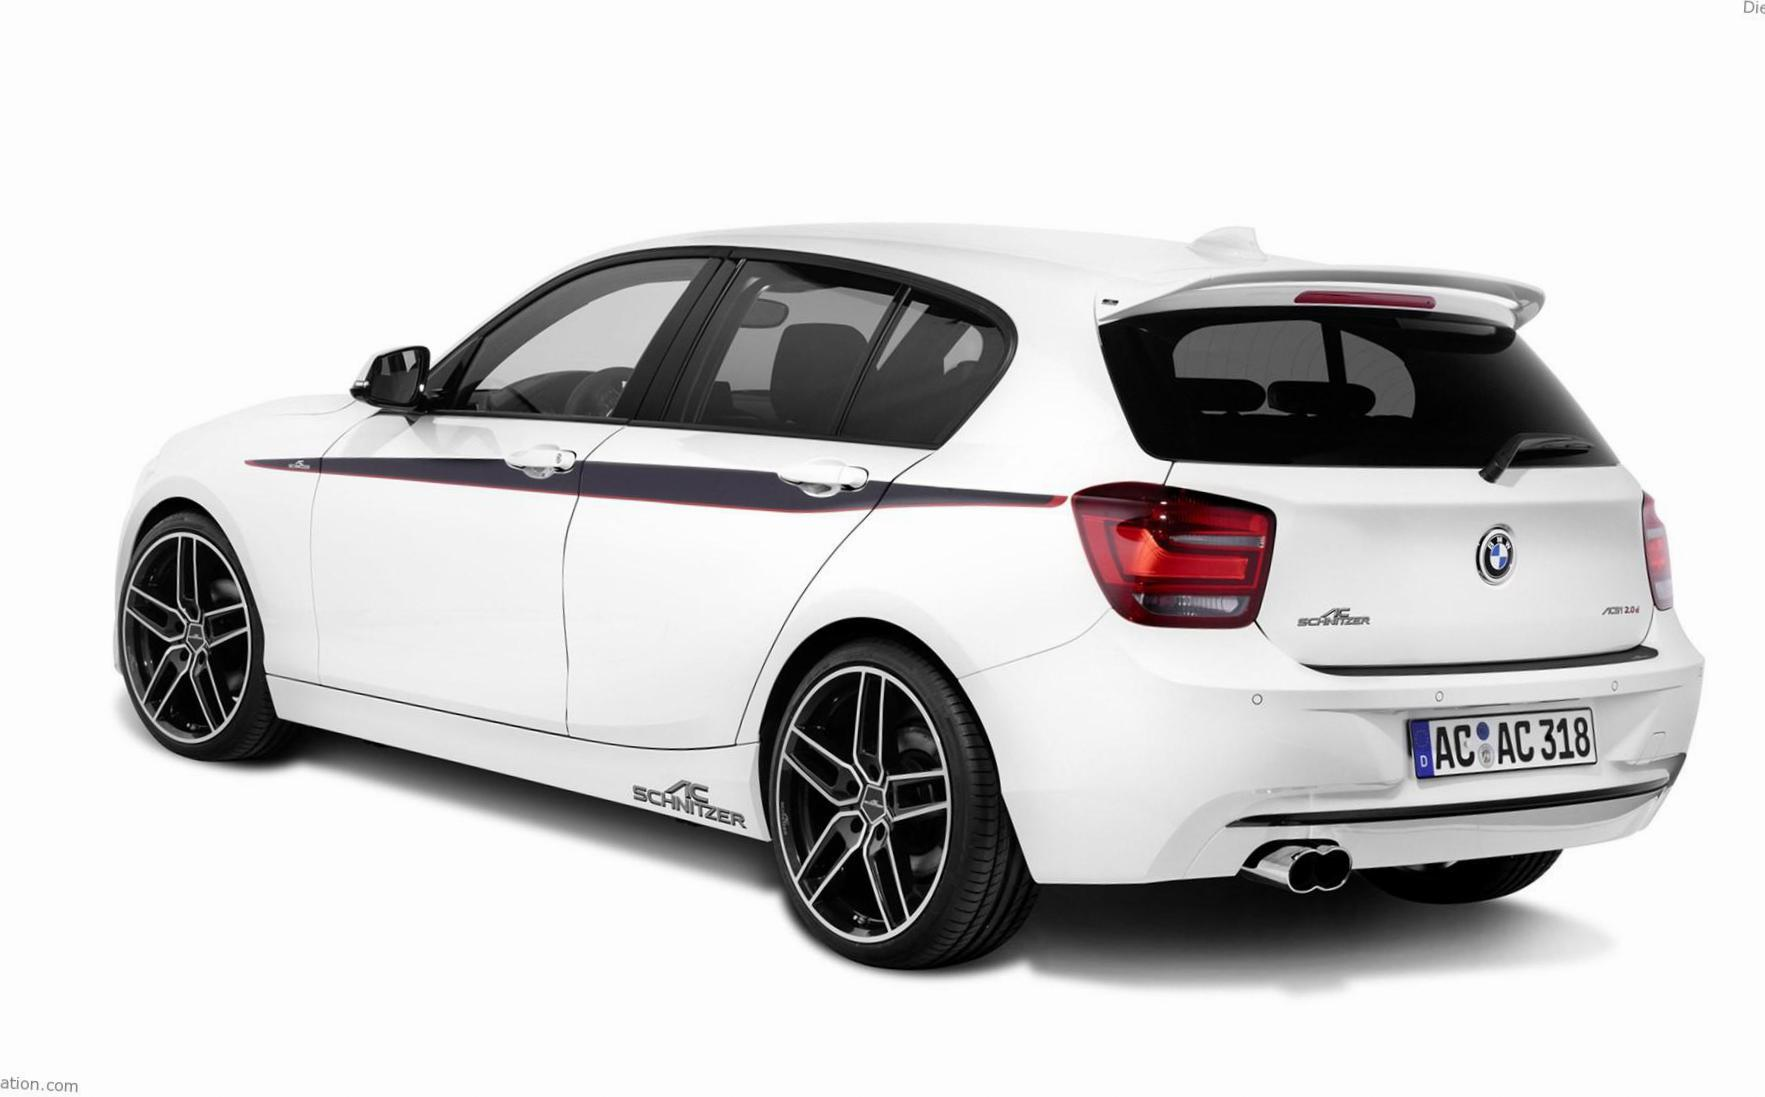 BMW 1 Series 5 doors (F20) models hatchback